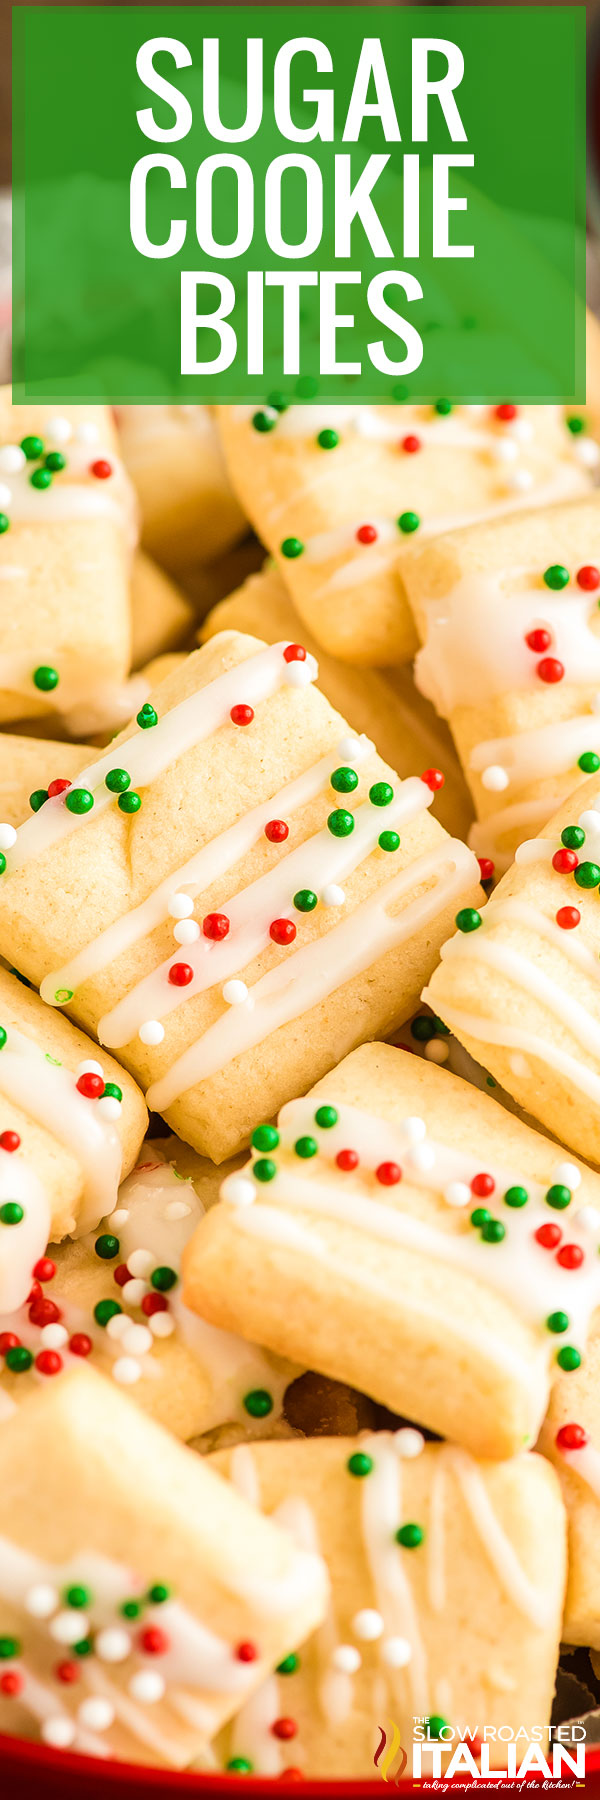 Title text (shown in a pile): Sugar Cookie Bites